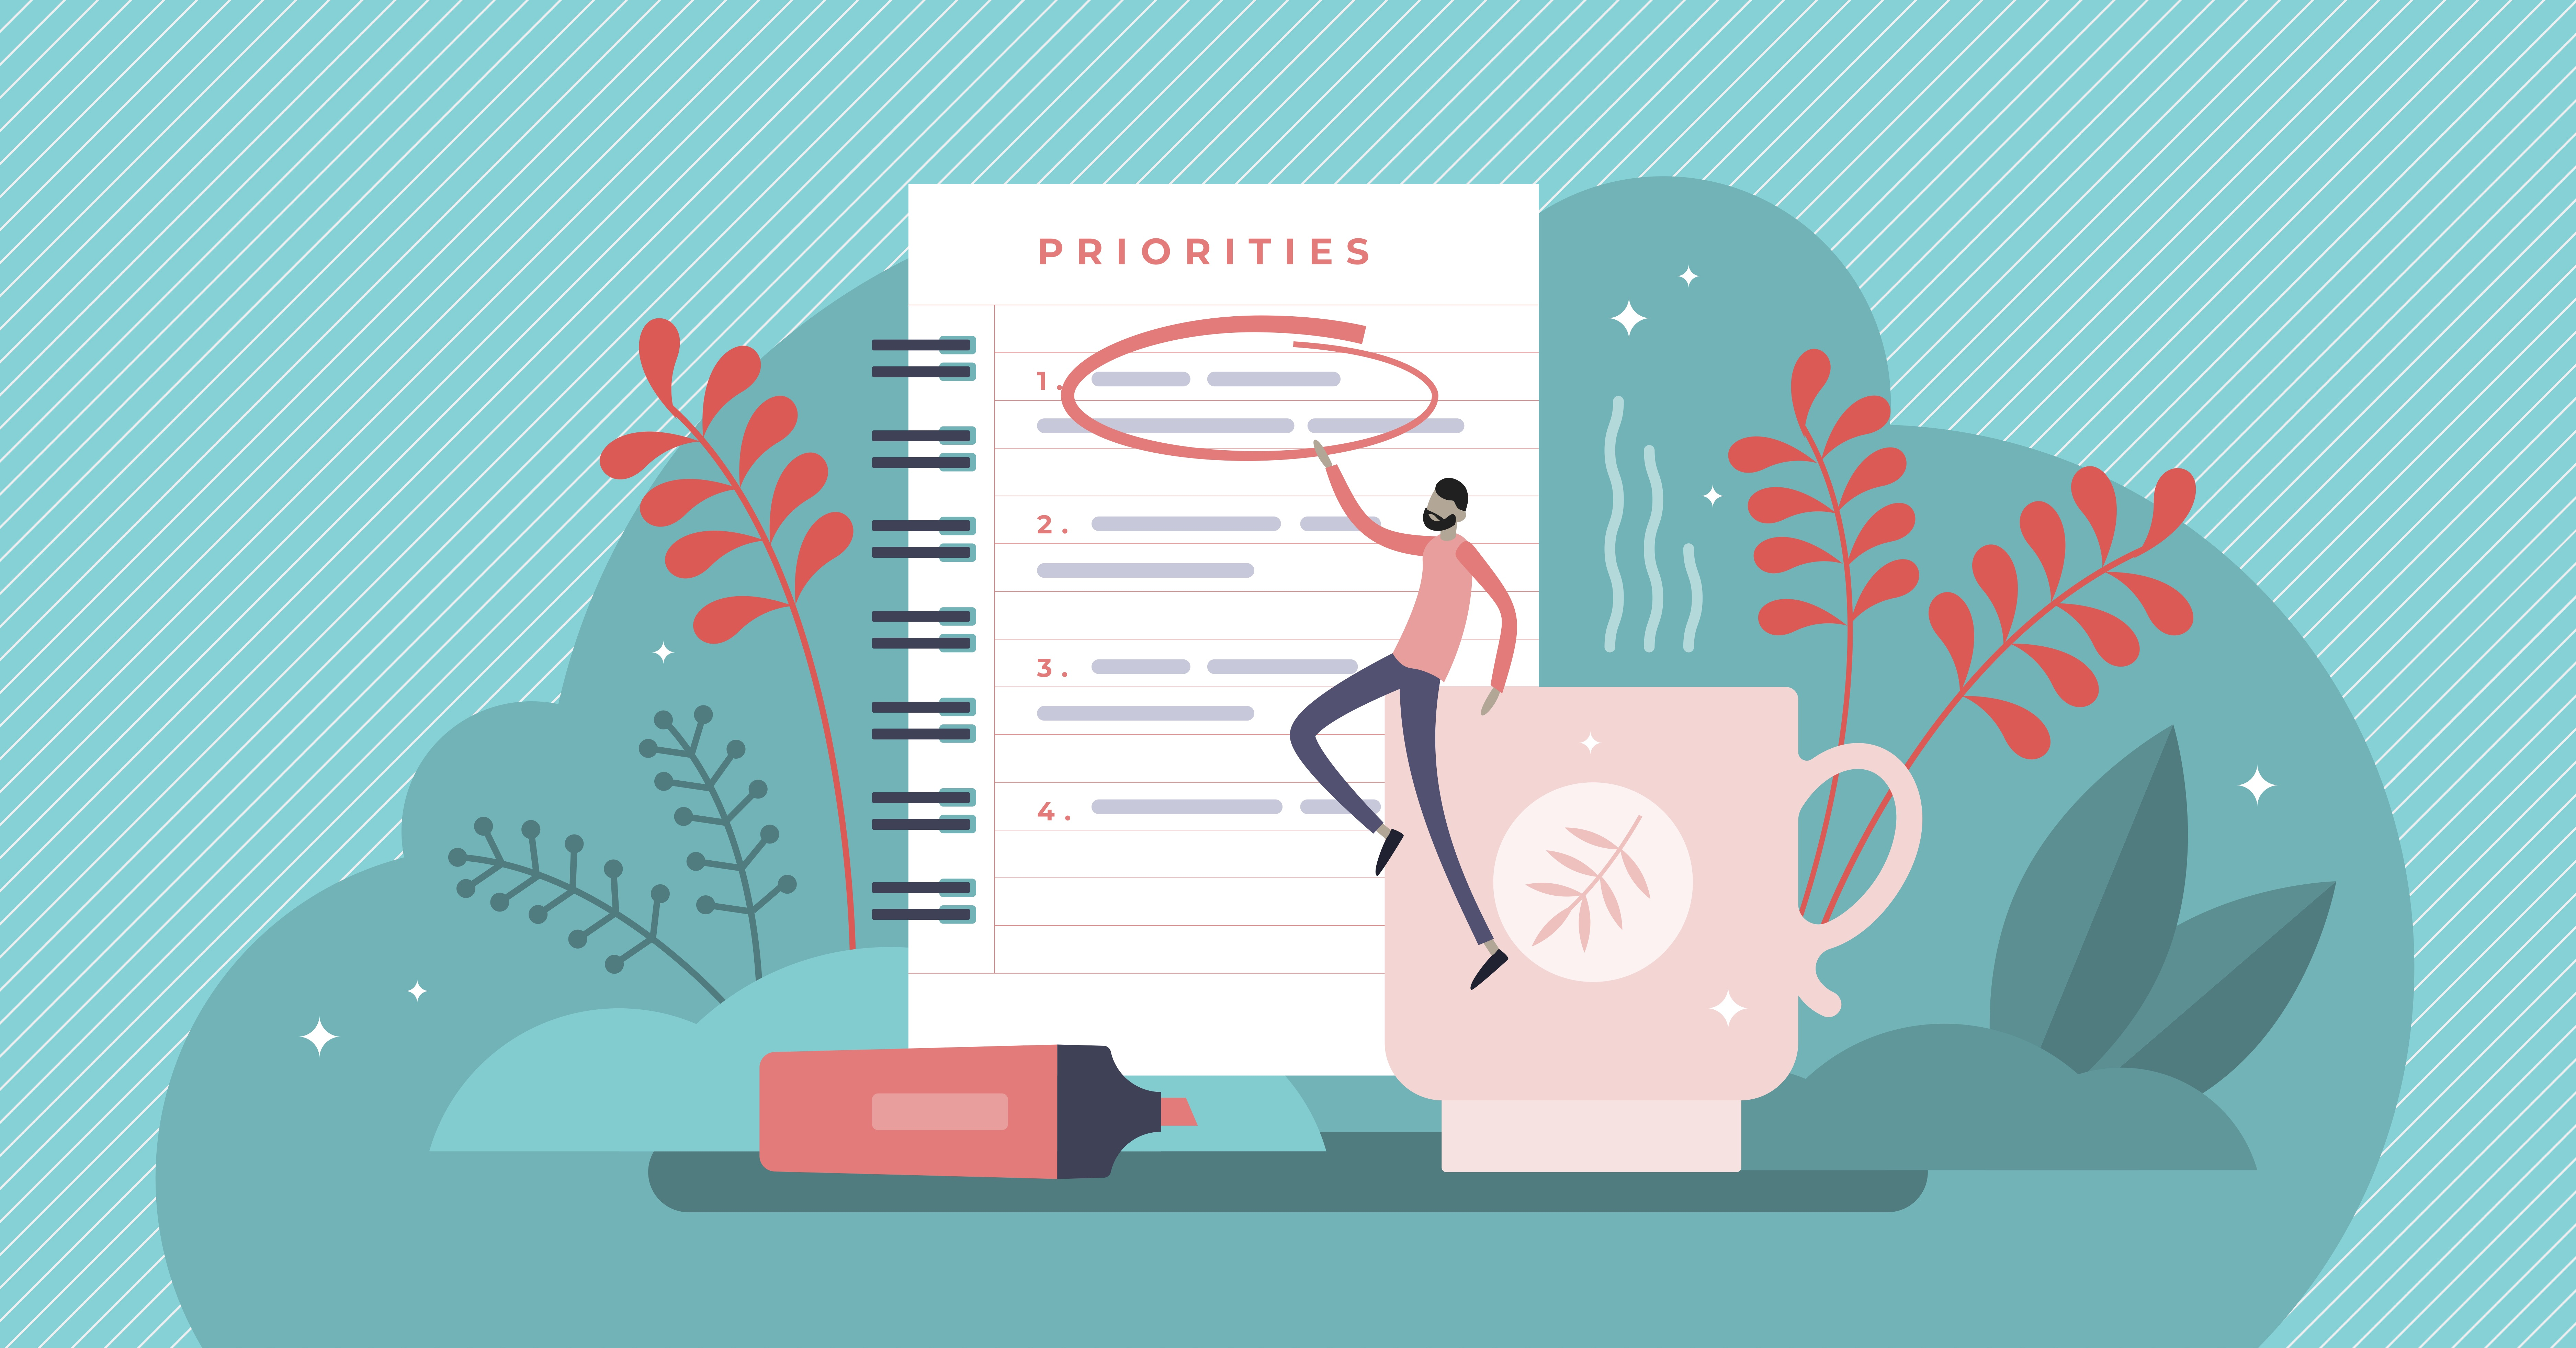 How to become a risk-free freelancer. This image shows a man perched upon a giant coffee cup, reaching to circle the top item on a larger-than-life list of priorities.